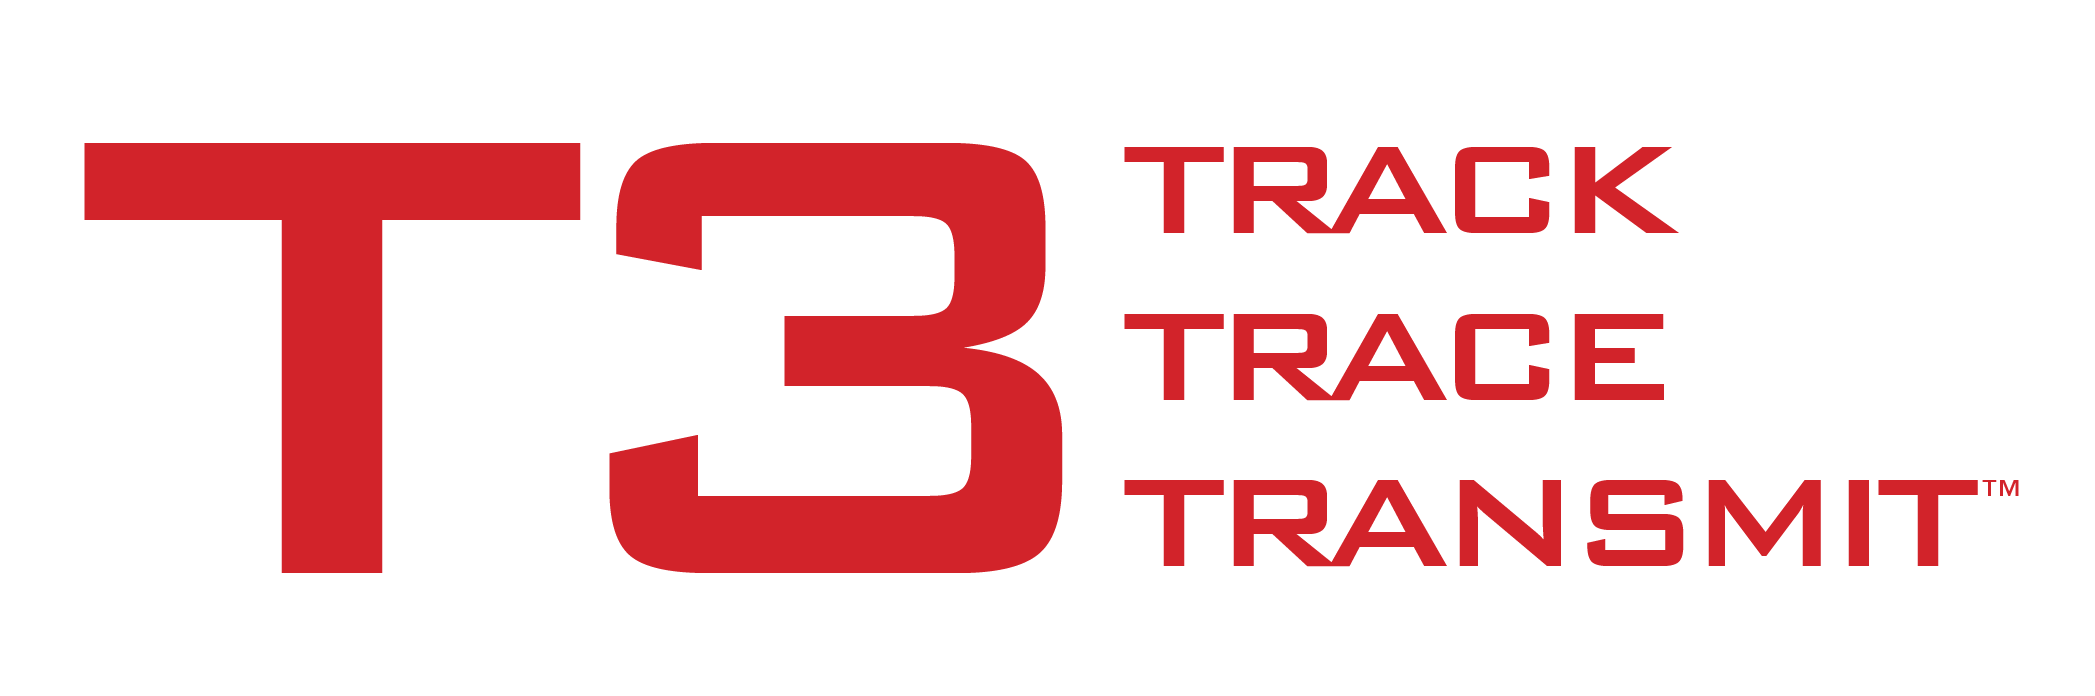 T3 logo image with text track, trace, transmit